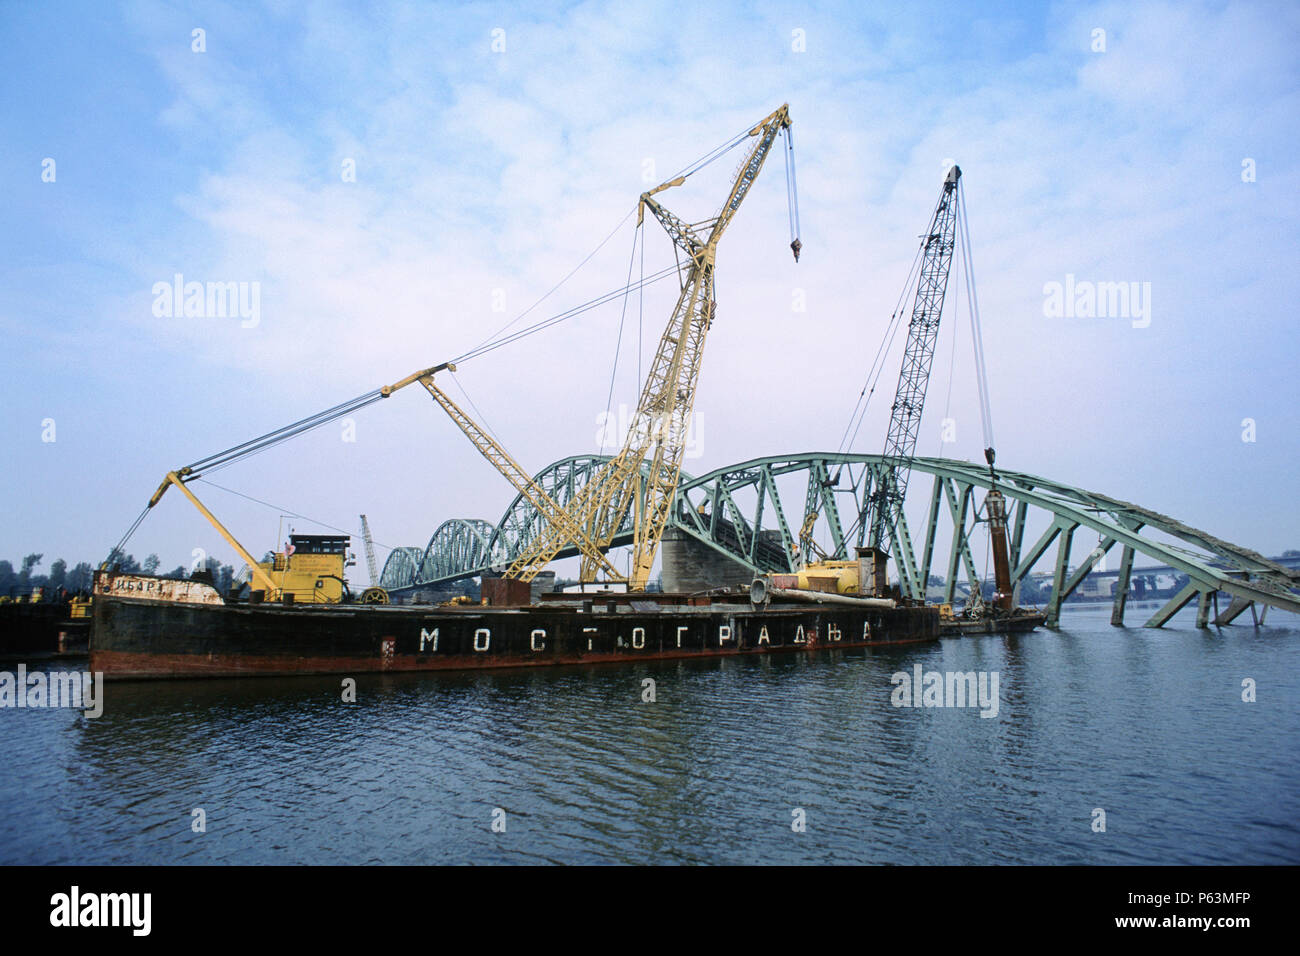 A floating crane is used to lift damaged sections of the rail bridge into central Belgrade, Serbia, damaged by NATO bombardment in 1998 - Stock Image